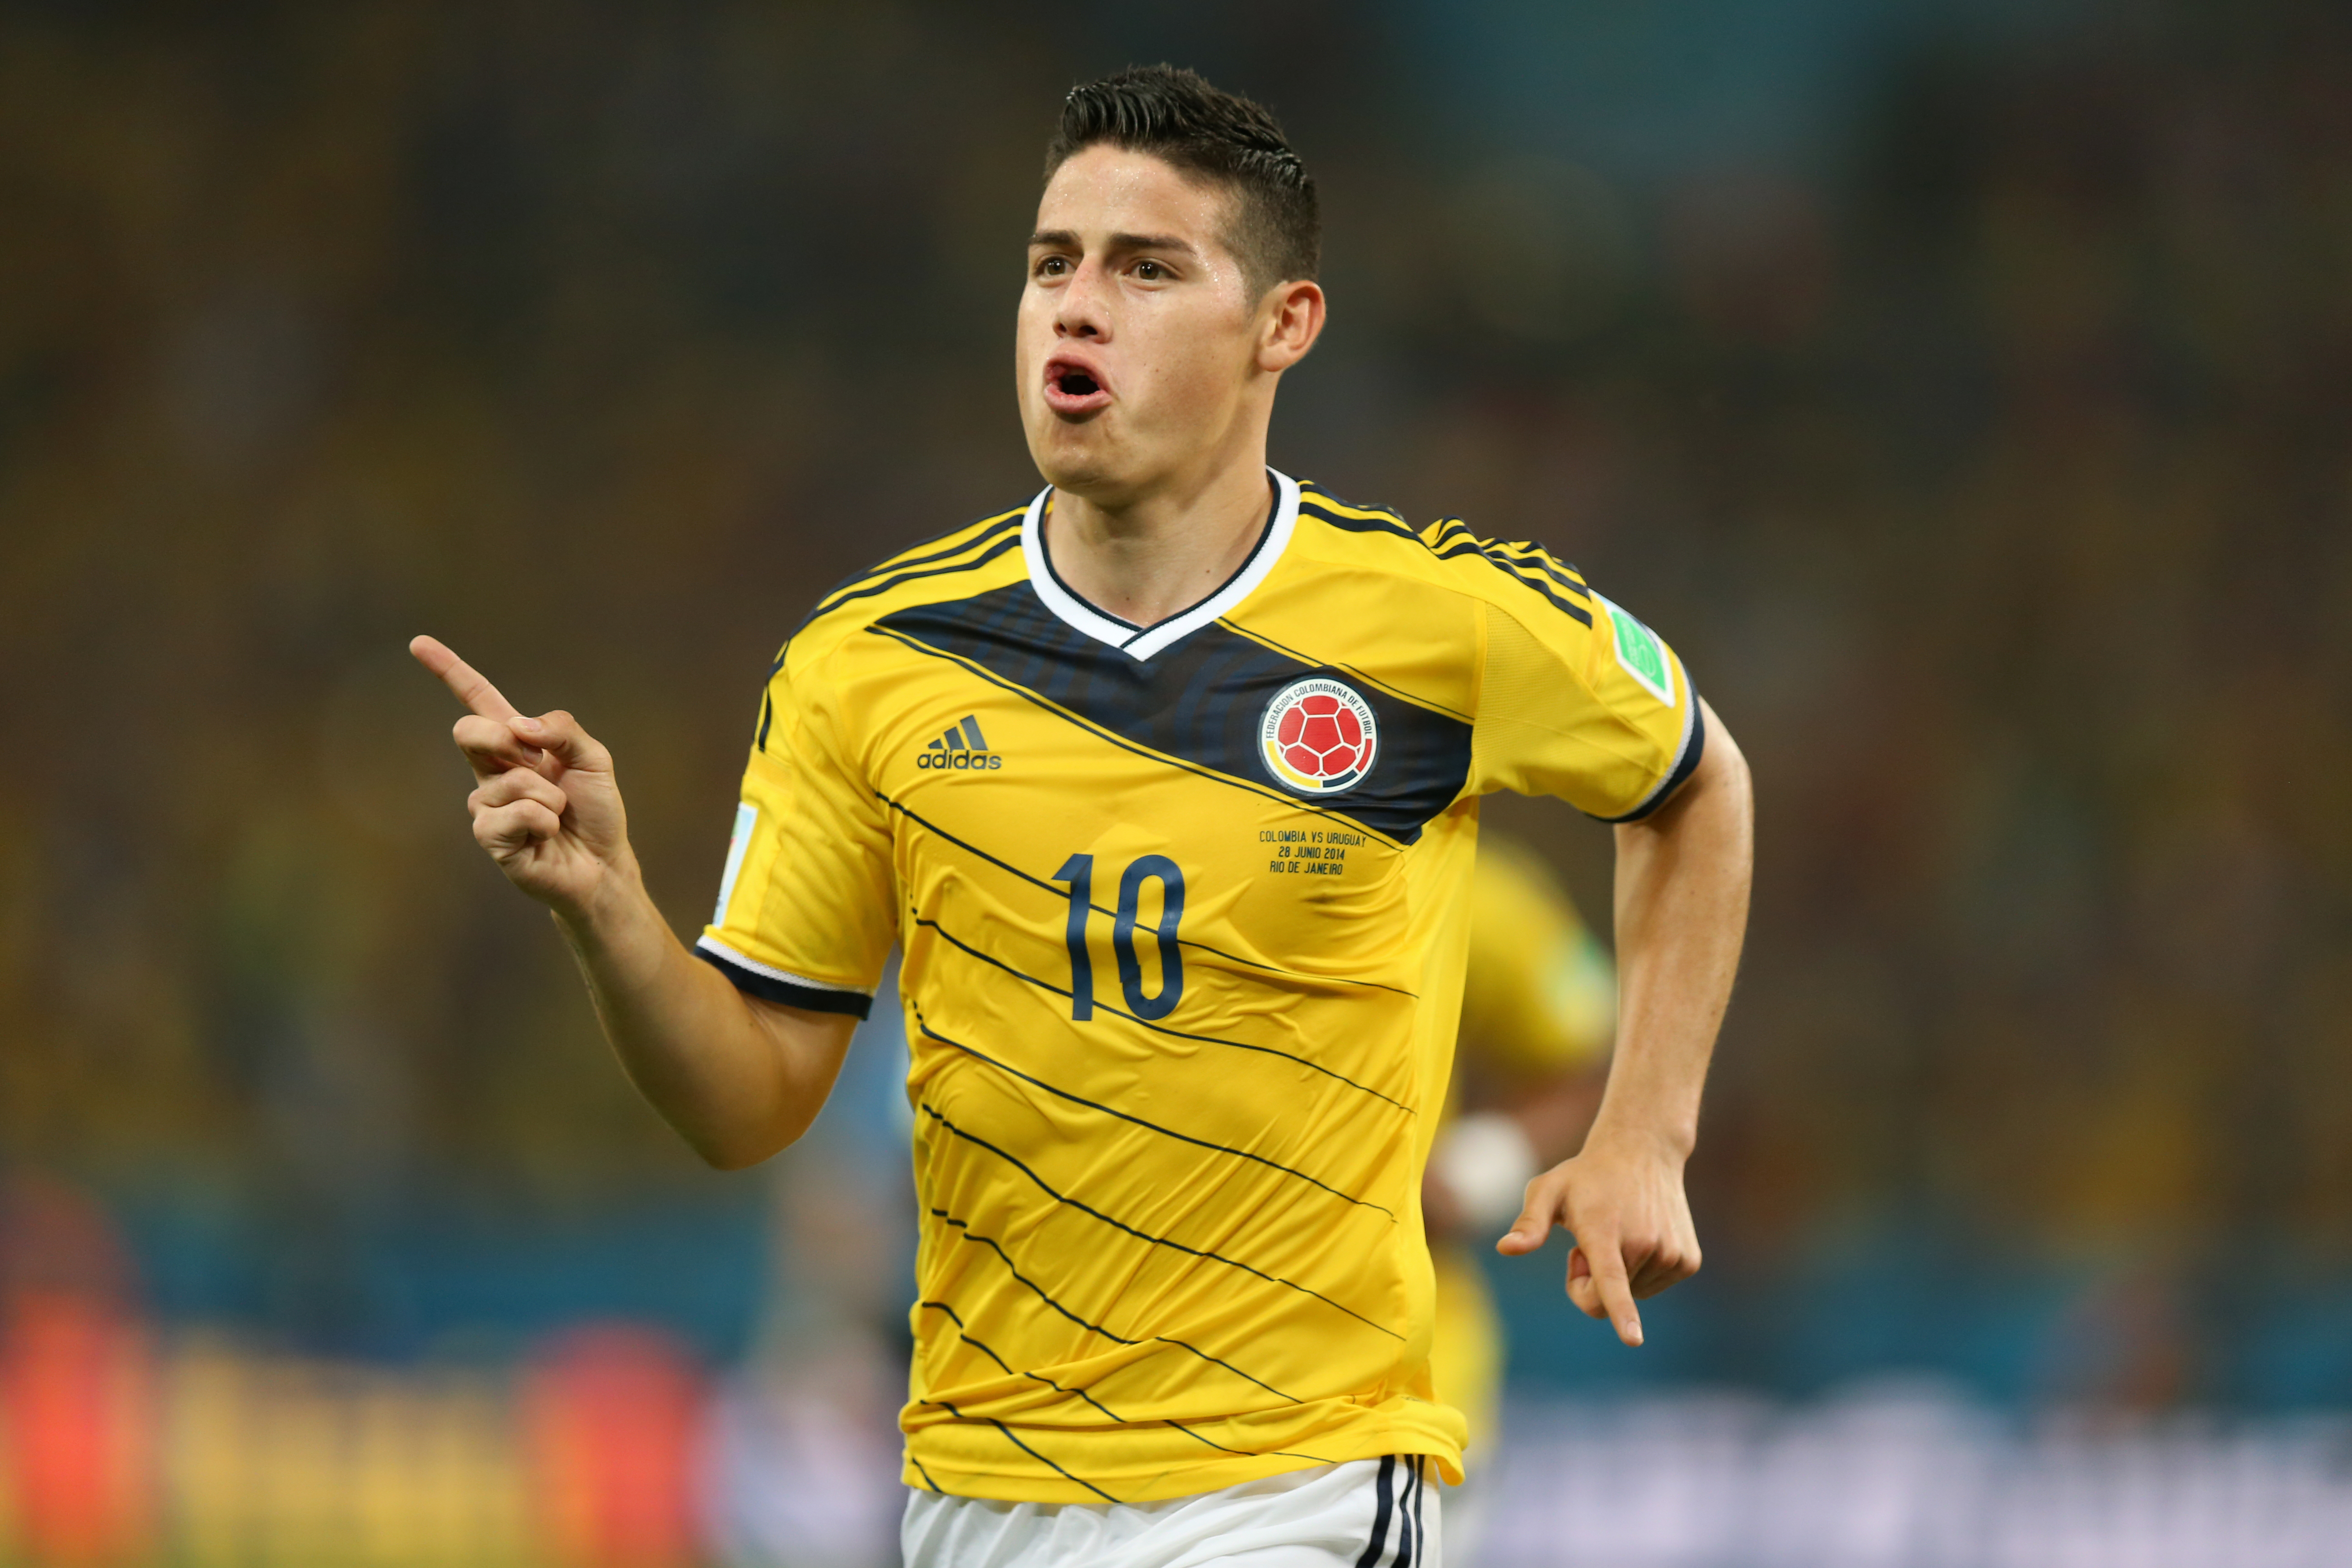 Rodriguez scored the Puskas Award winning goal in the 2014 World Cup. Image: PA Images